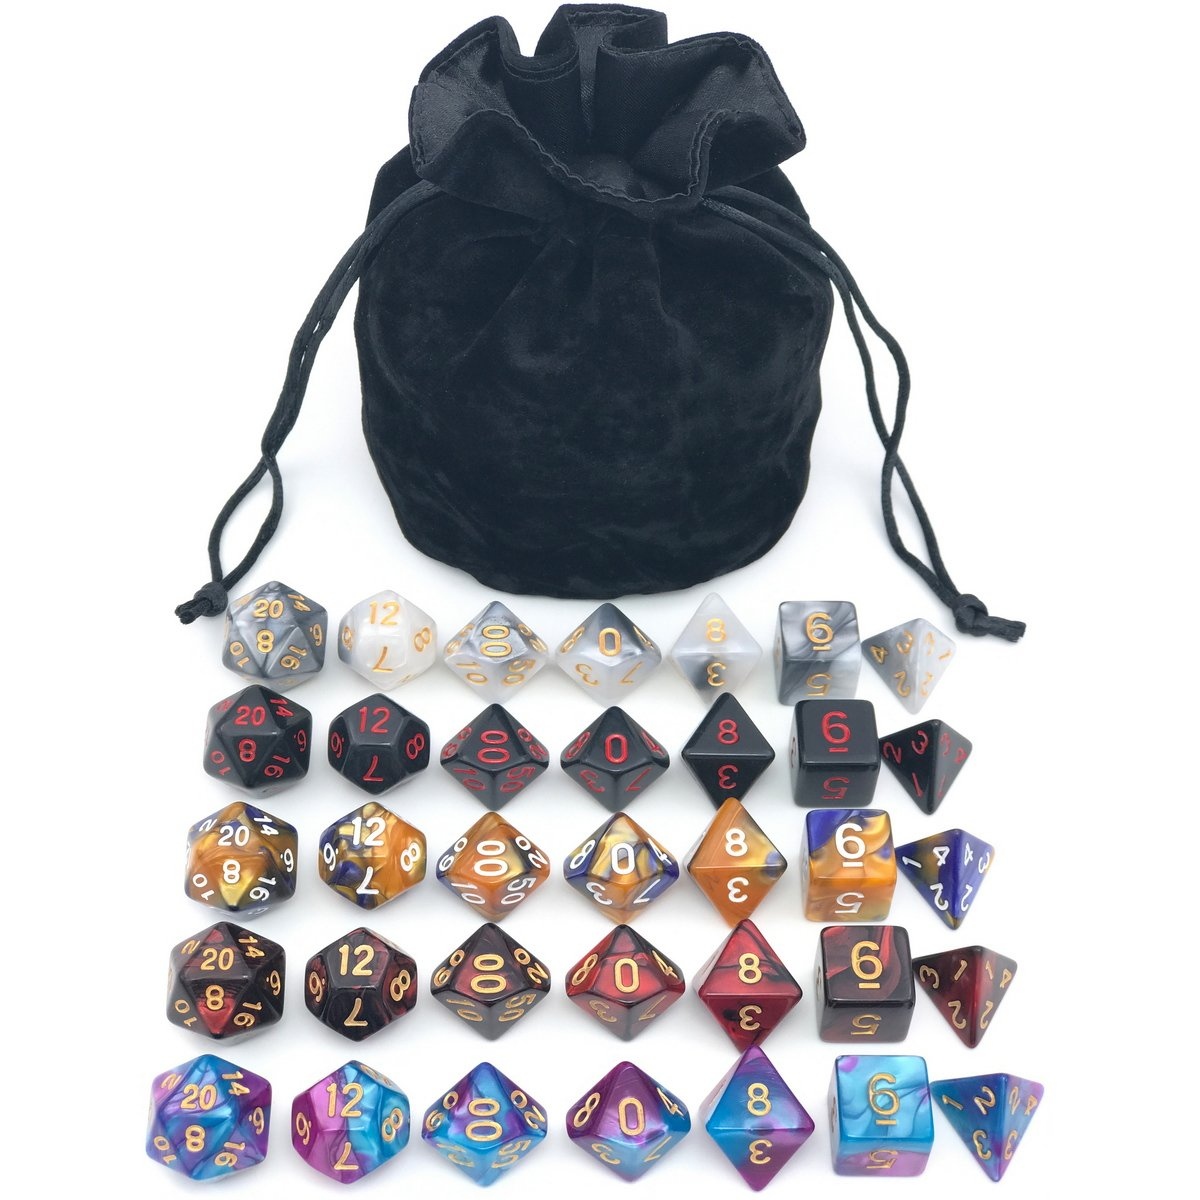 Assorted Polyhedral Dice Set with Black Drawstring Bag, 5 Complete Dice Sets of D4 D6 D8 D10 D% D12 D20 Great for Dungeons and Dragons DND RPG MTG Games by IvyFieldDice